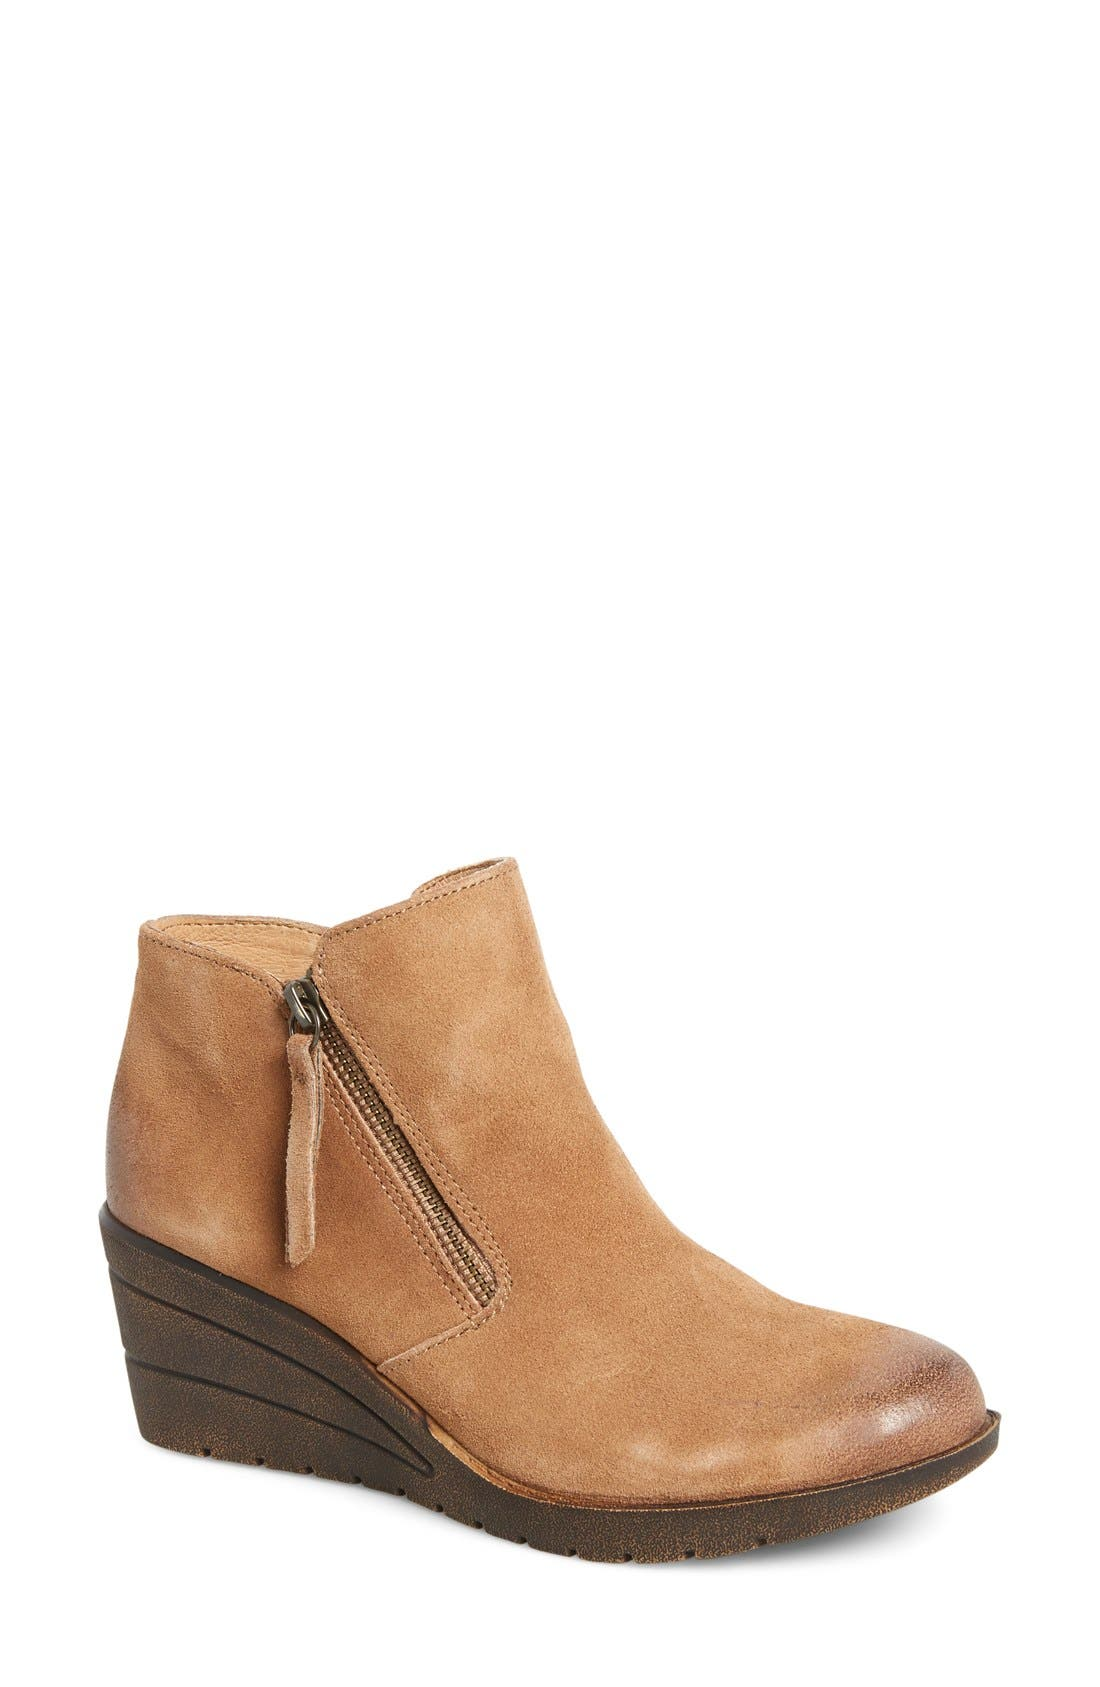 SÖFFT Salem Wedge Bootie